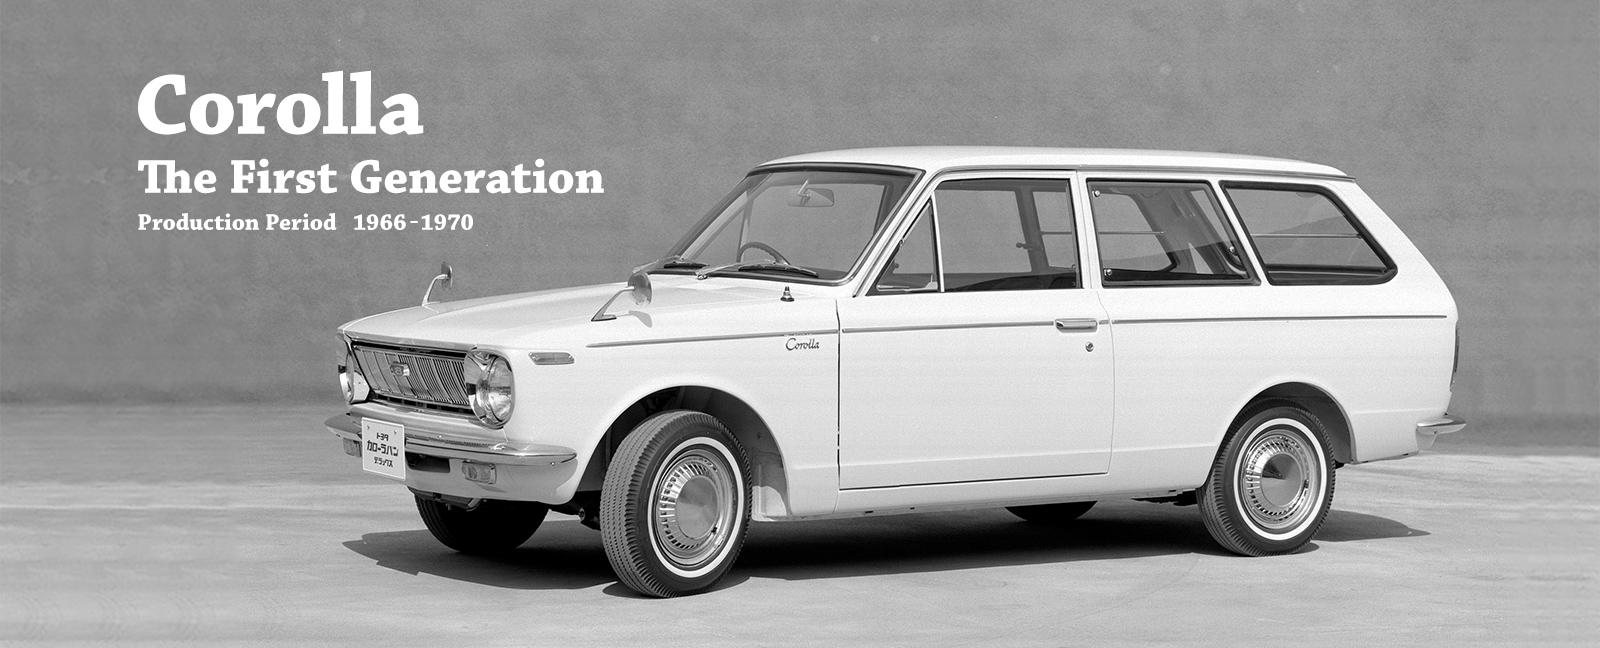 Toyota Global Site | Corolla | The First Generation_01